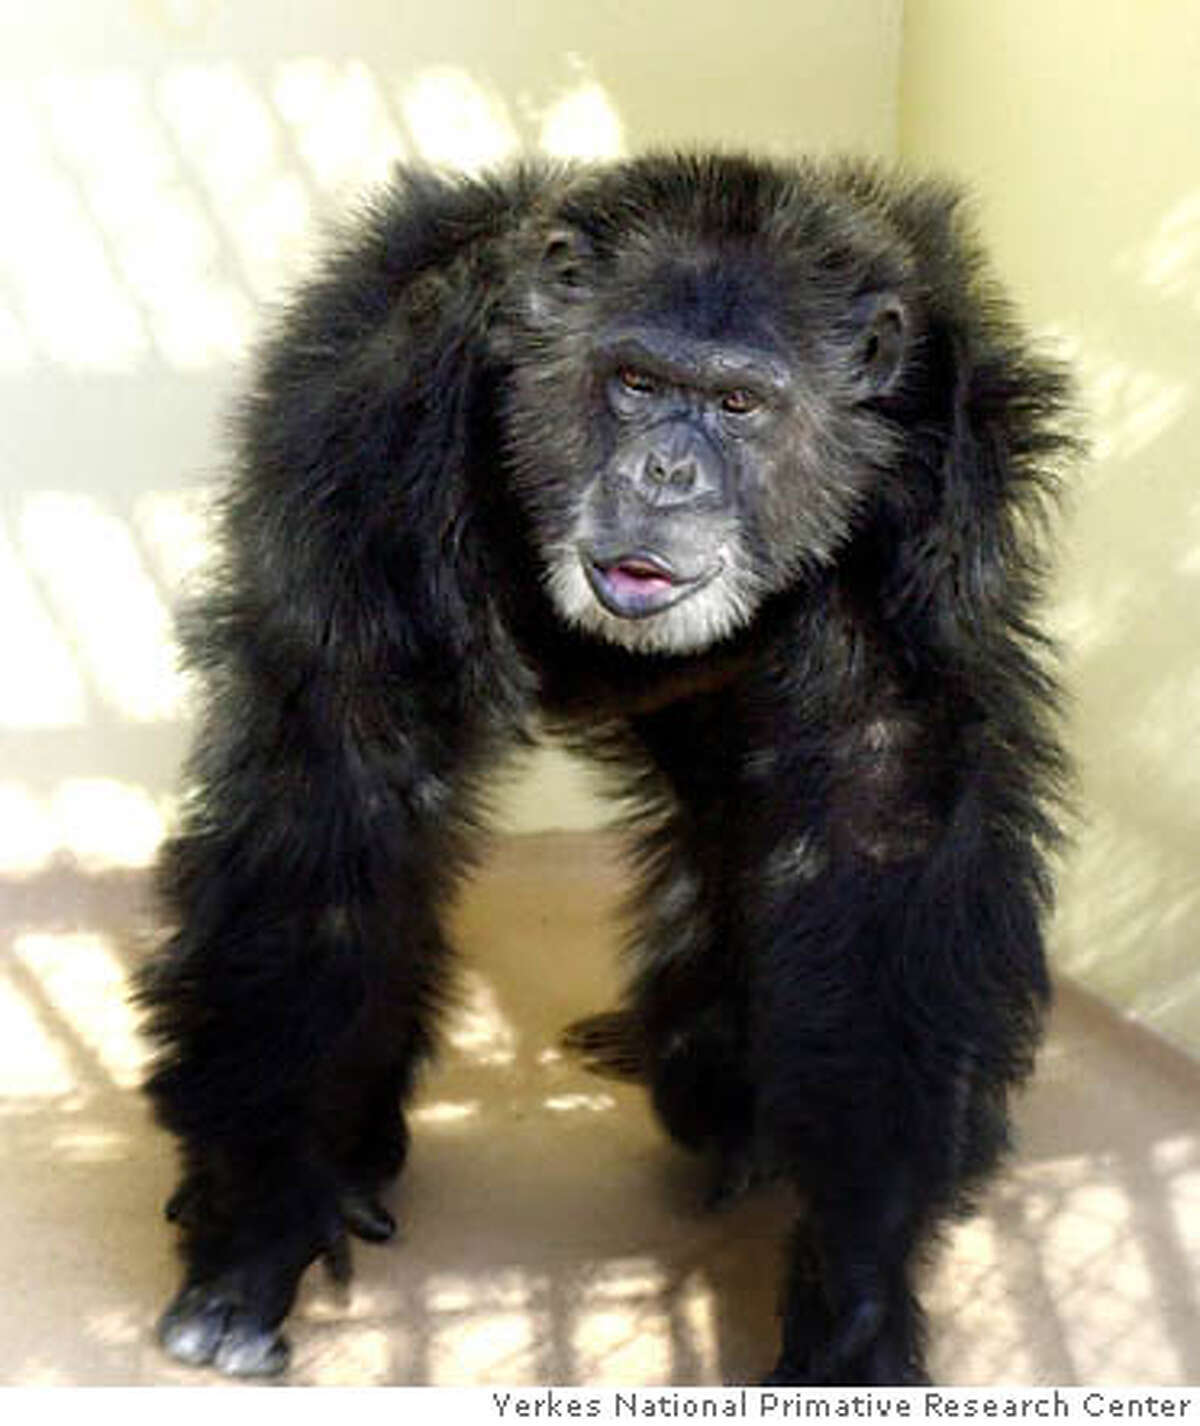 Clint's DNA was used to sequence the chimpanzee genome, an important advance for humanity. Photo courtesy of Yerkes National Primate Research Center